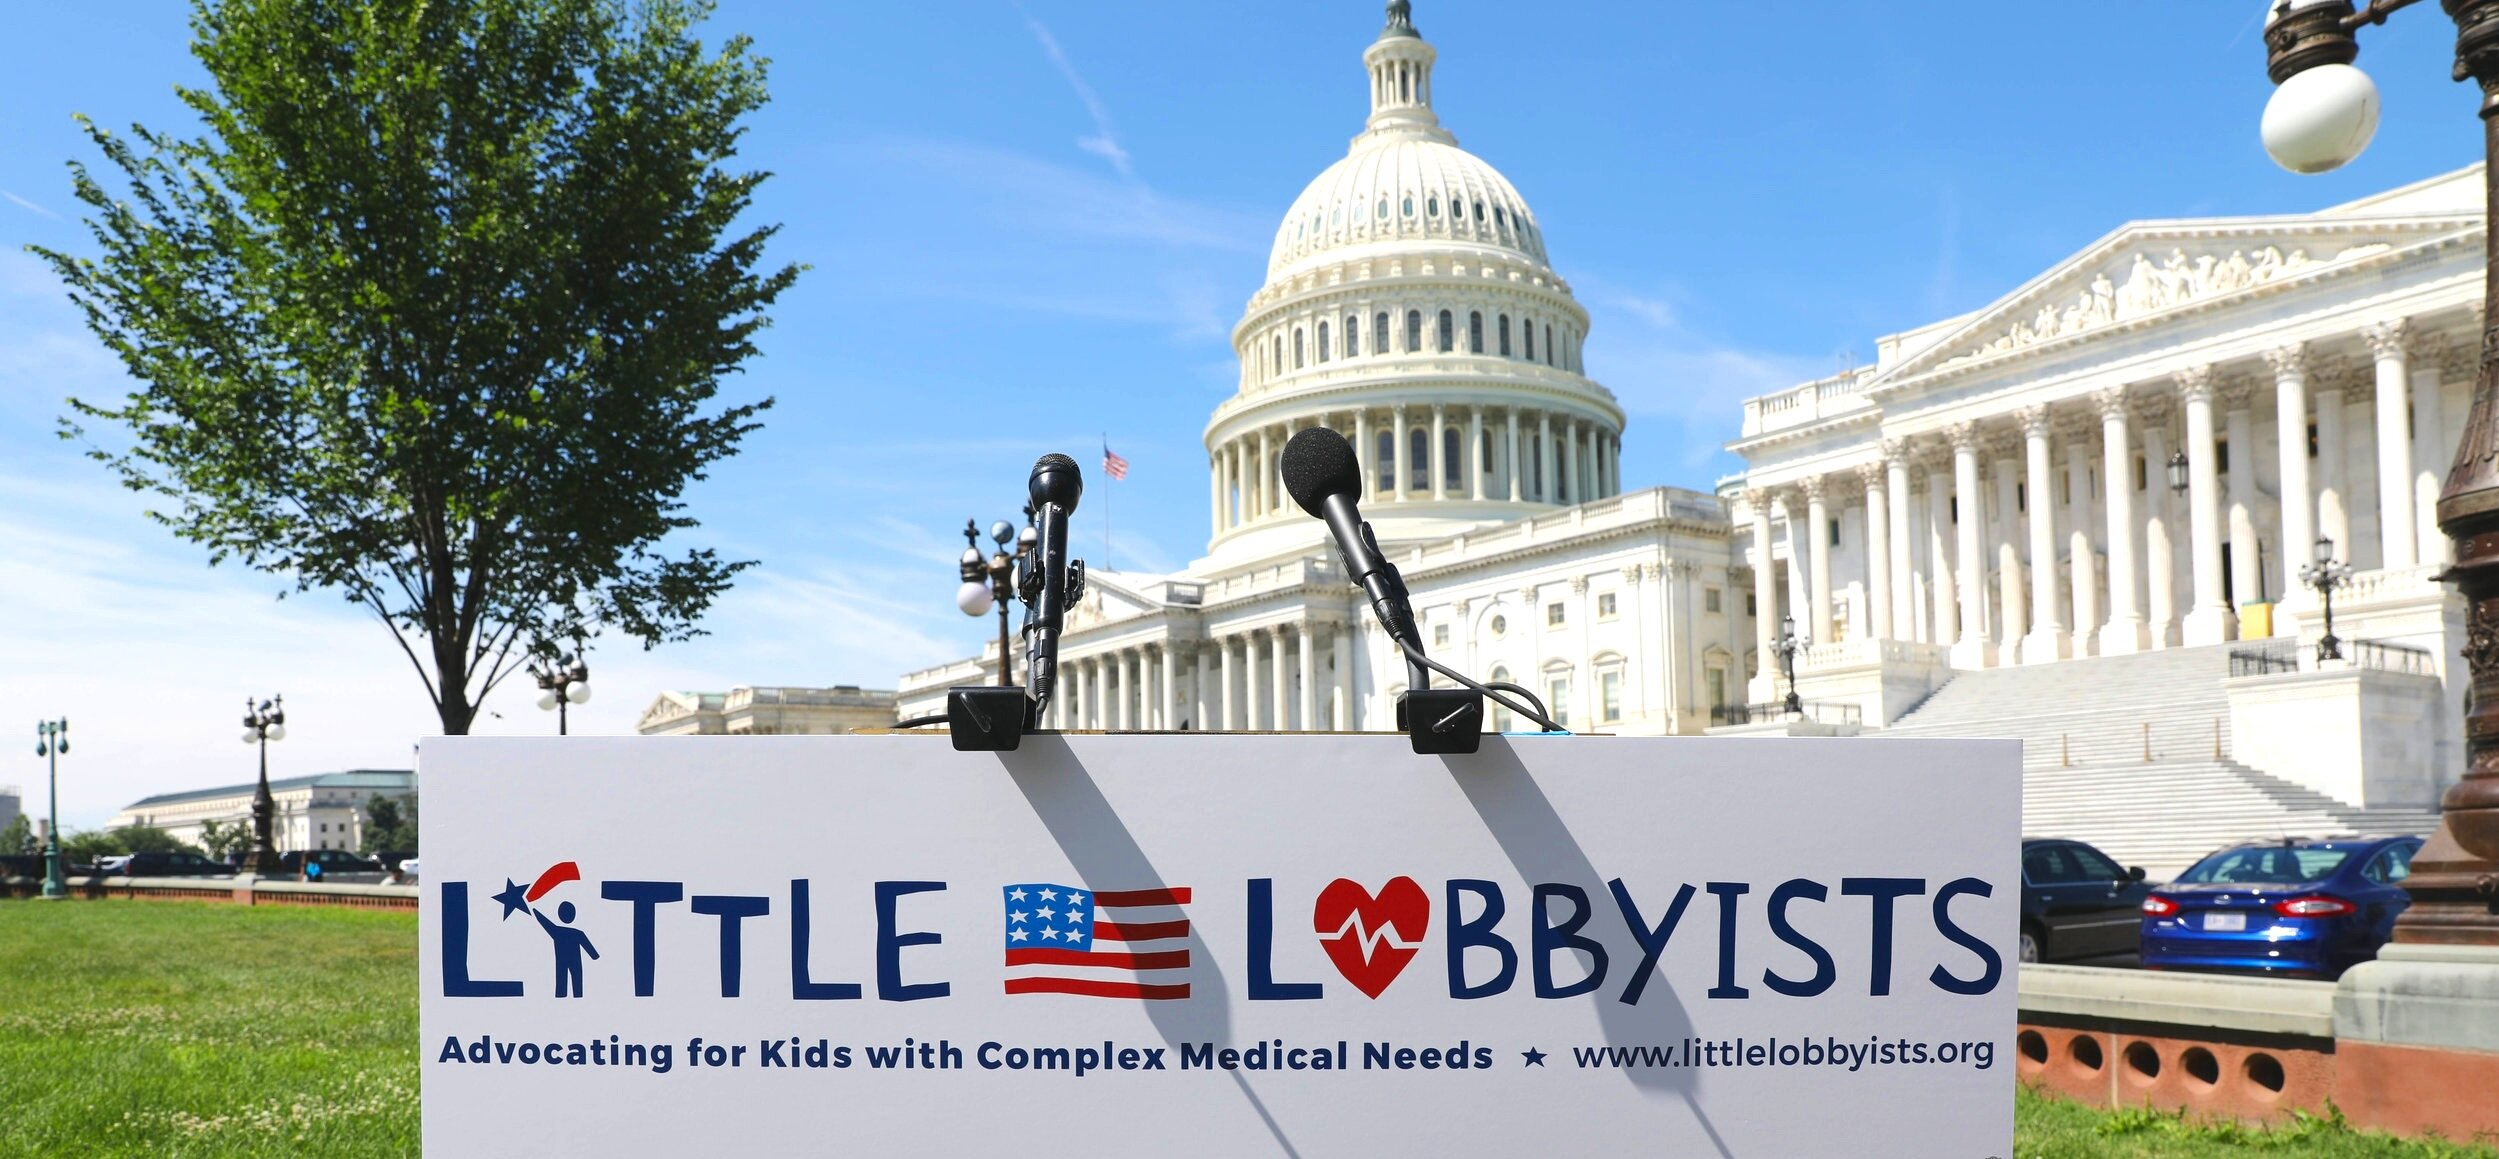 Little Lobbyists sign in front of the Capitol.